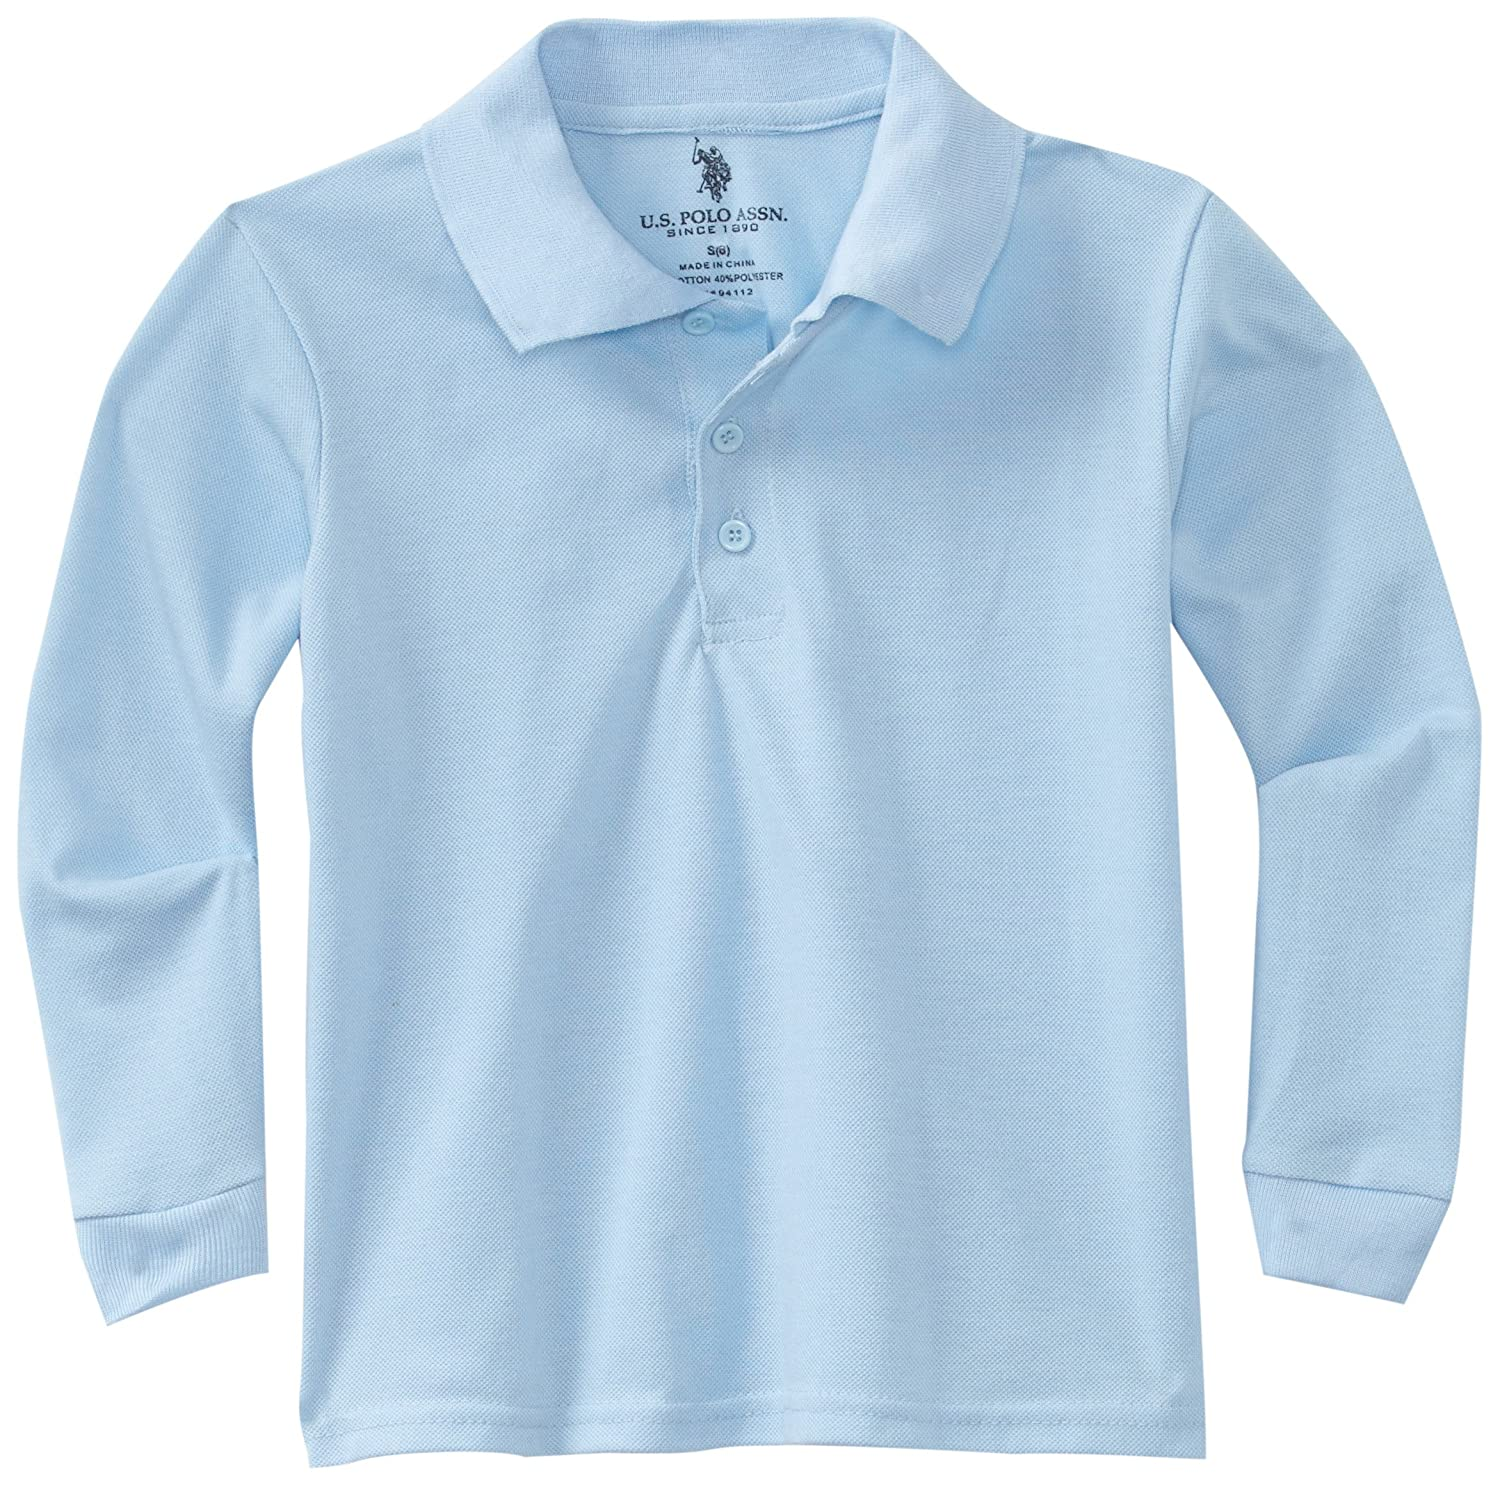 U.S. Polo Assn. Big Boys' Polo Shirt (More Styles Available), Pique Blue-6615, 10/12 U.S. Polo School Uniform